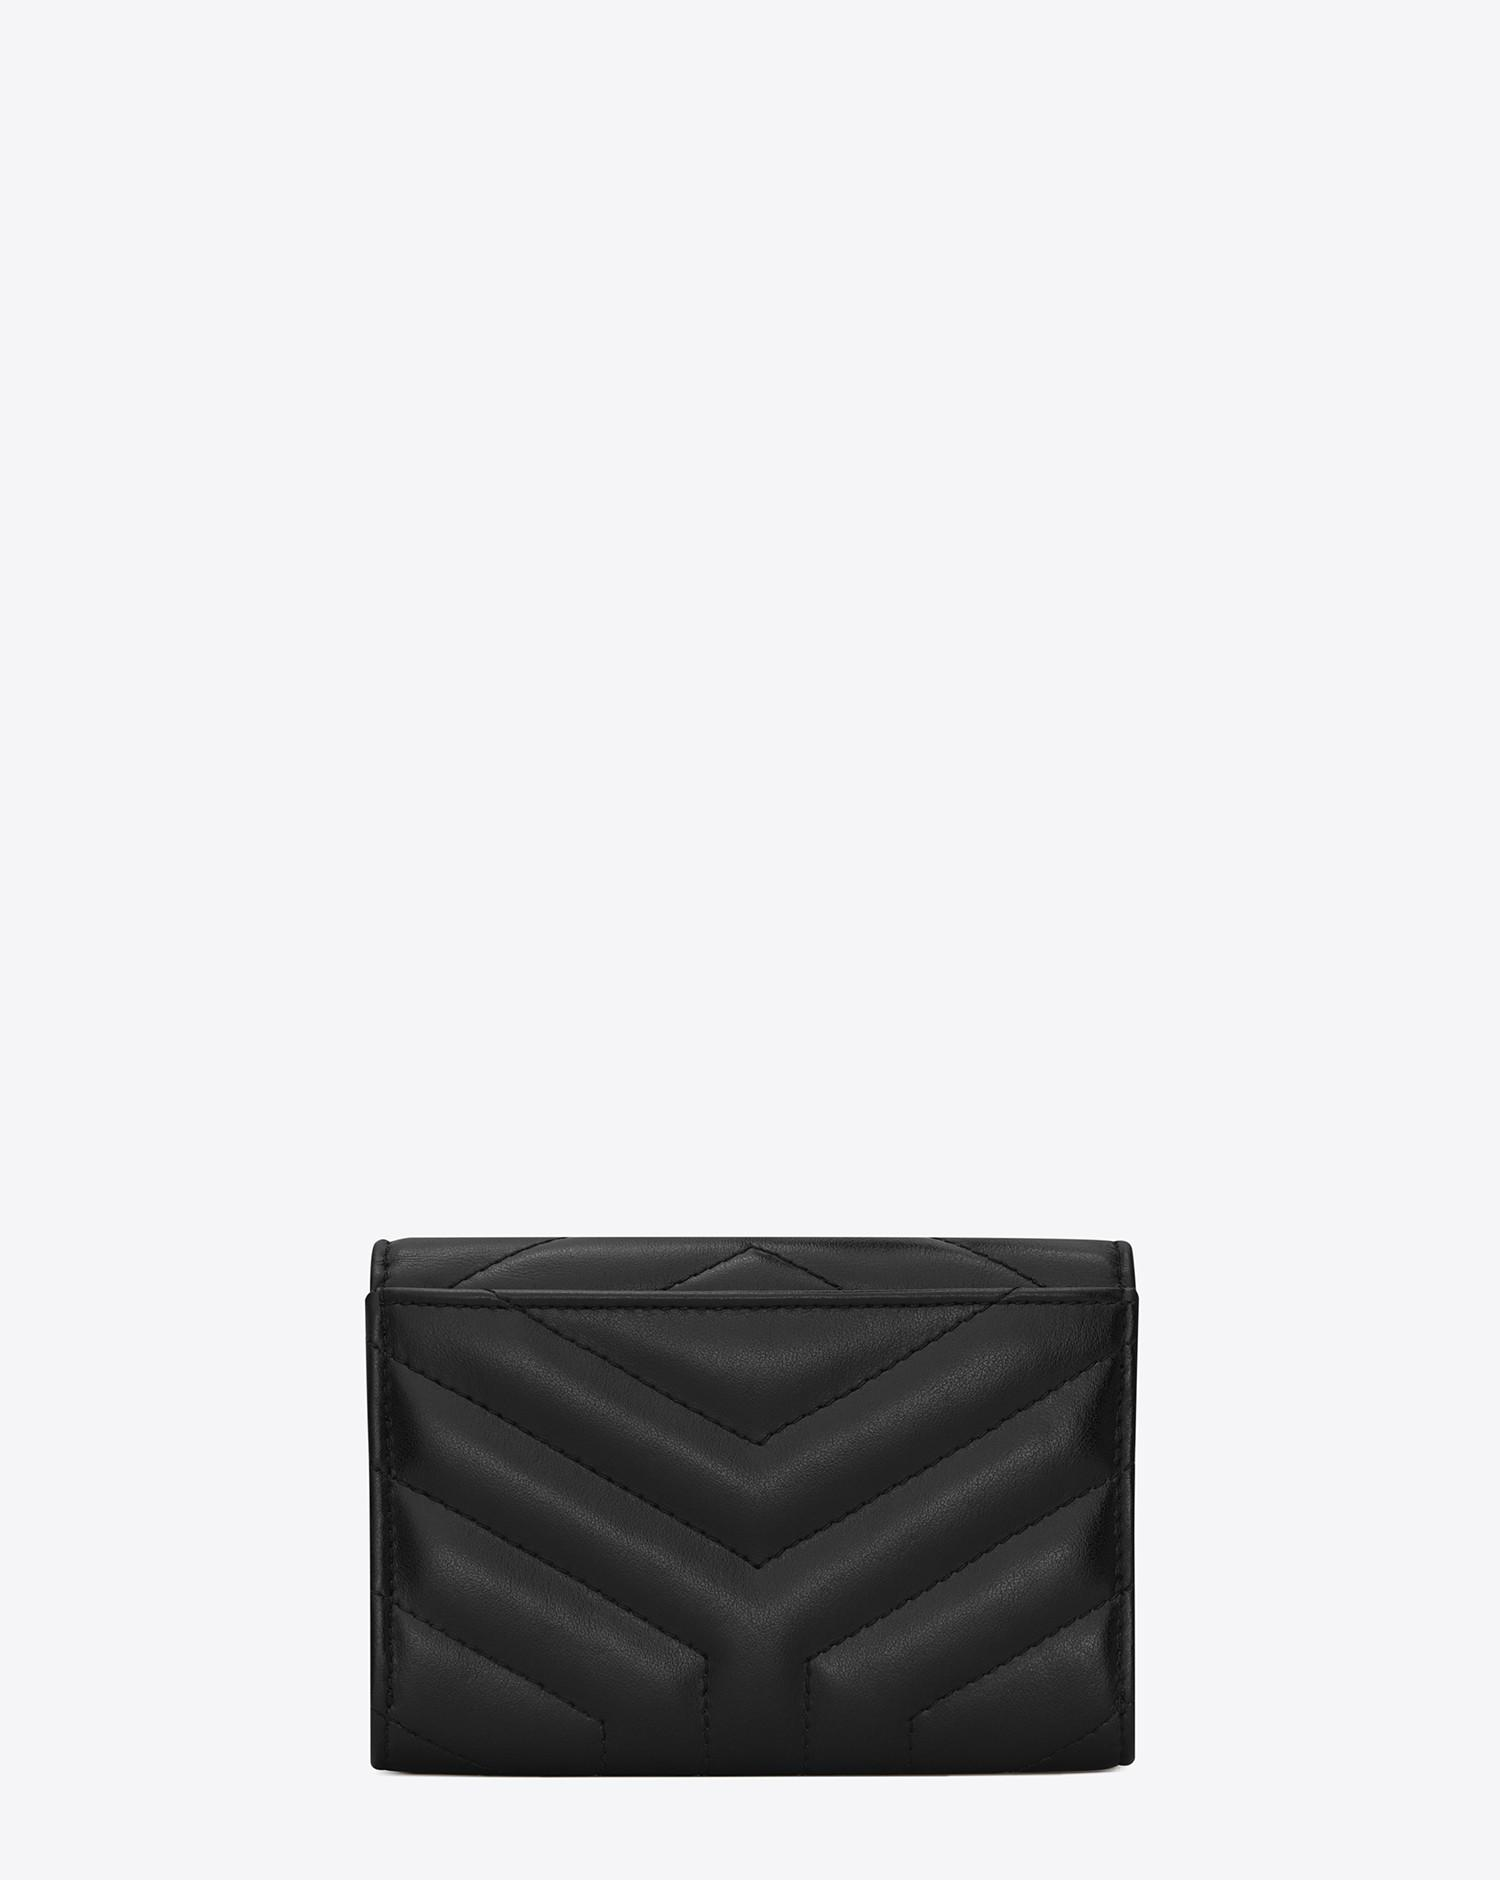 b409b68008 Saint Laurent Loulou Small Envelop Wallet In Matelassé